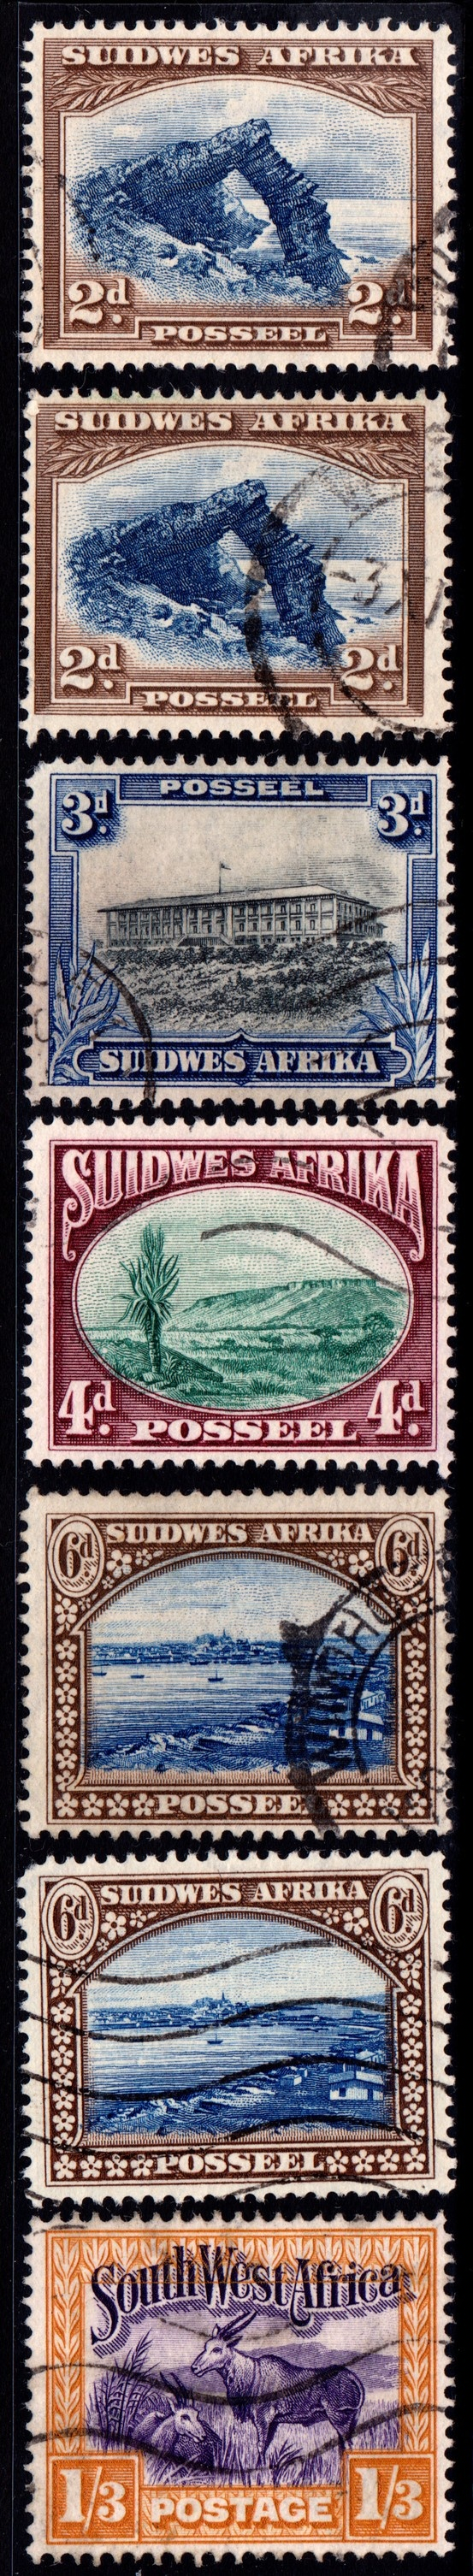 Stamps from British Southwest Africa, printed in setenant pairs, with both English and Afrikaans. I only have the Afrikaans ones. King George V